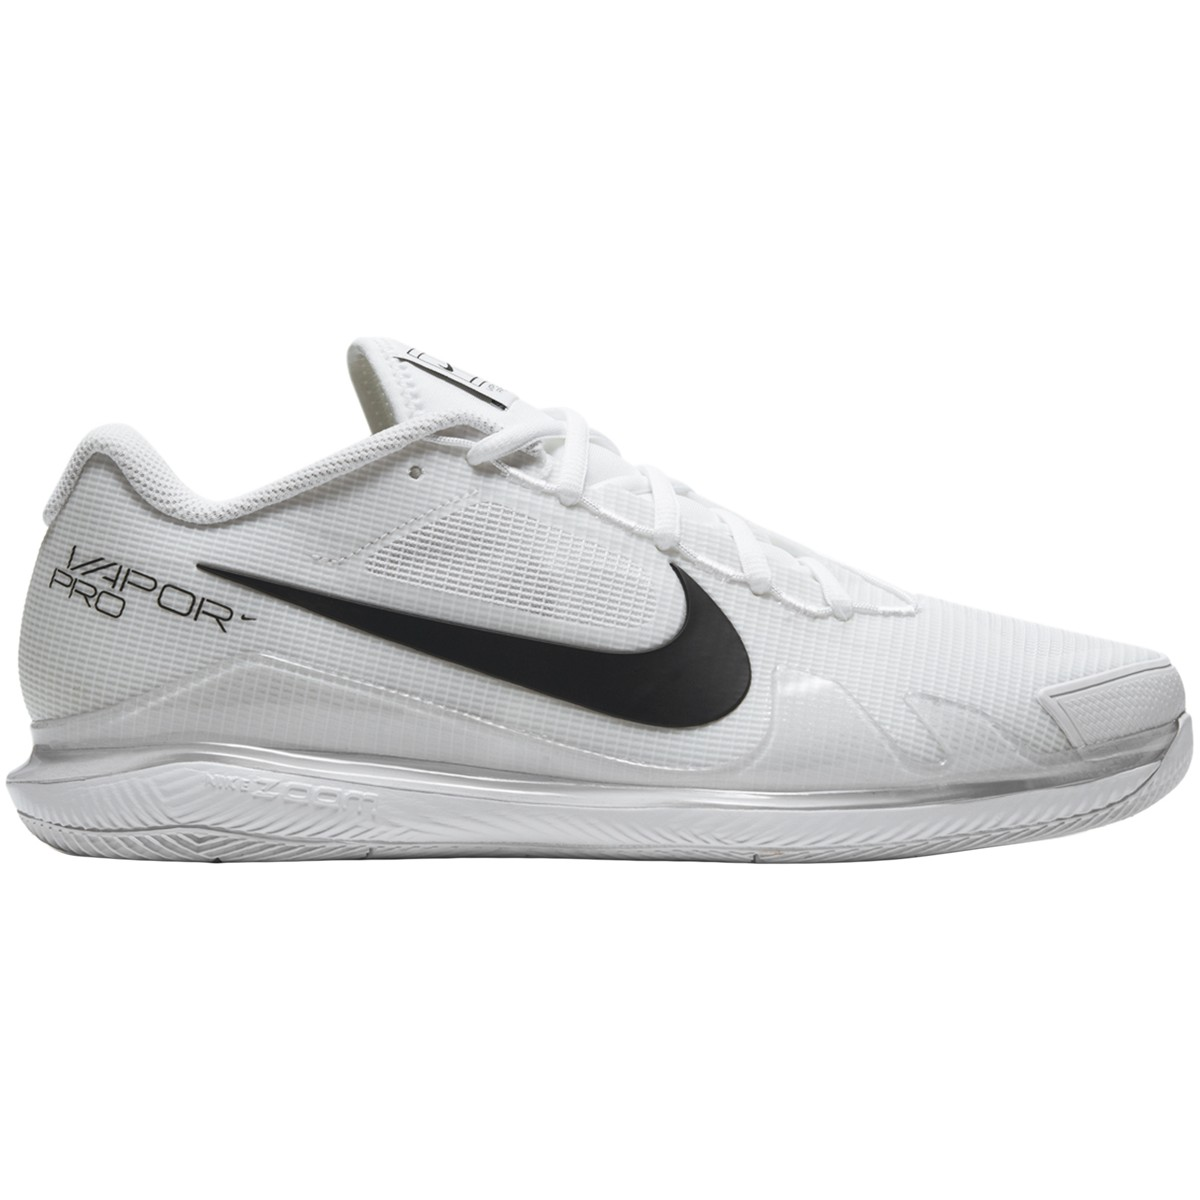 Chaussures Nike Air Zoom Vapor Pro Toutes Surfaces - Chaussures ...